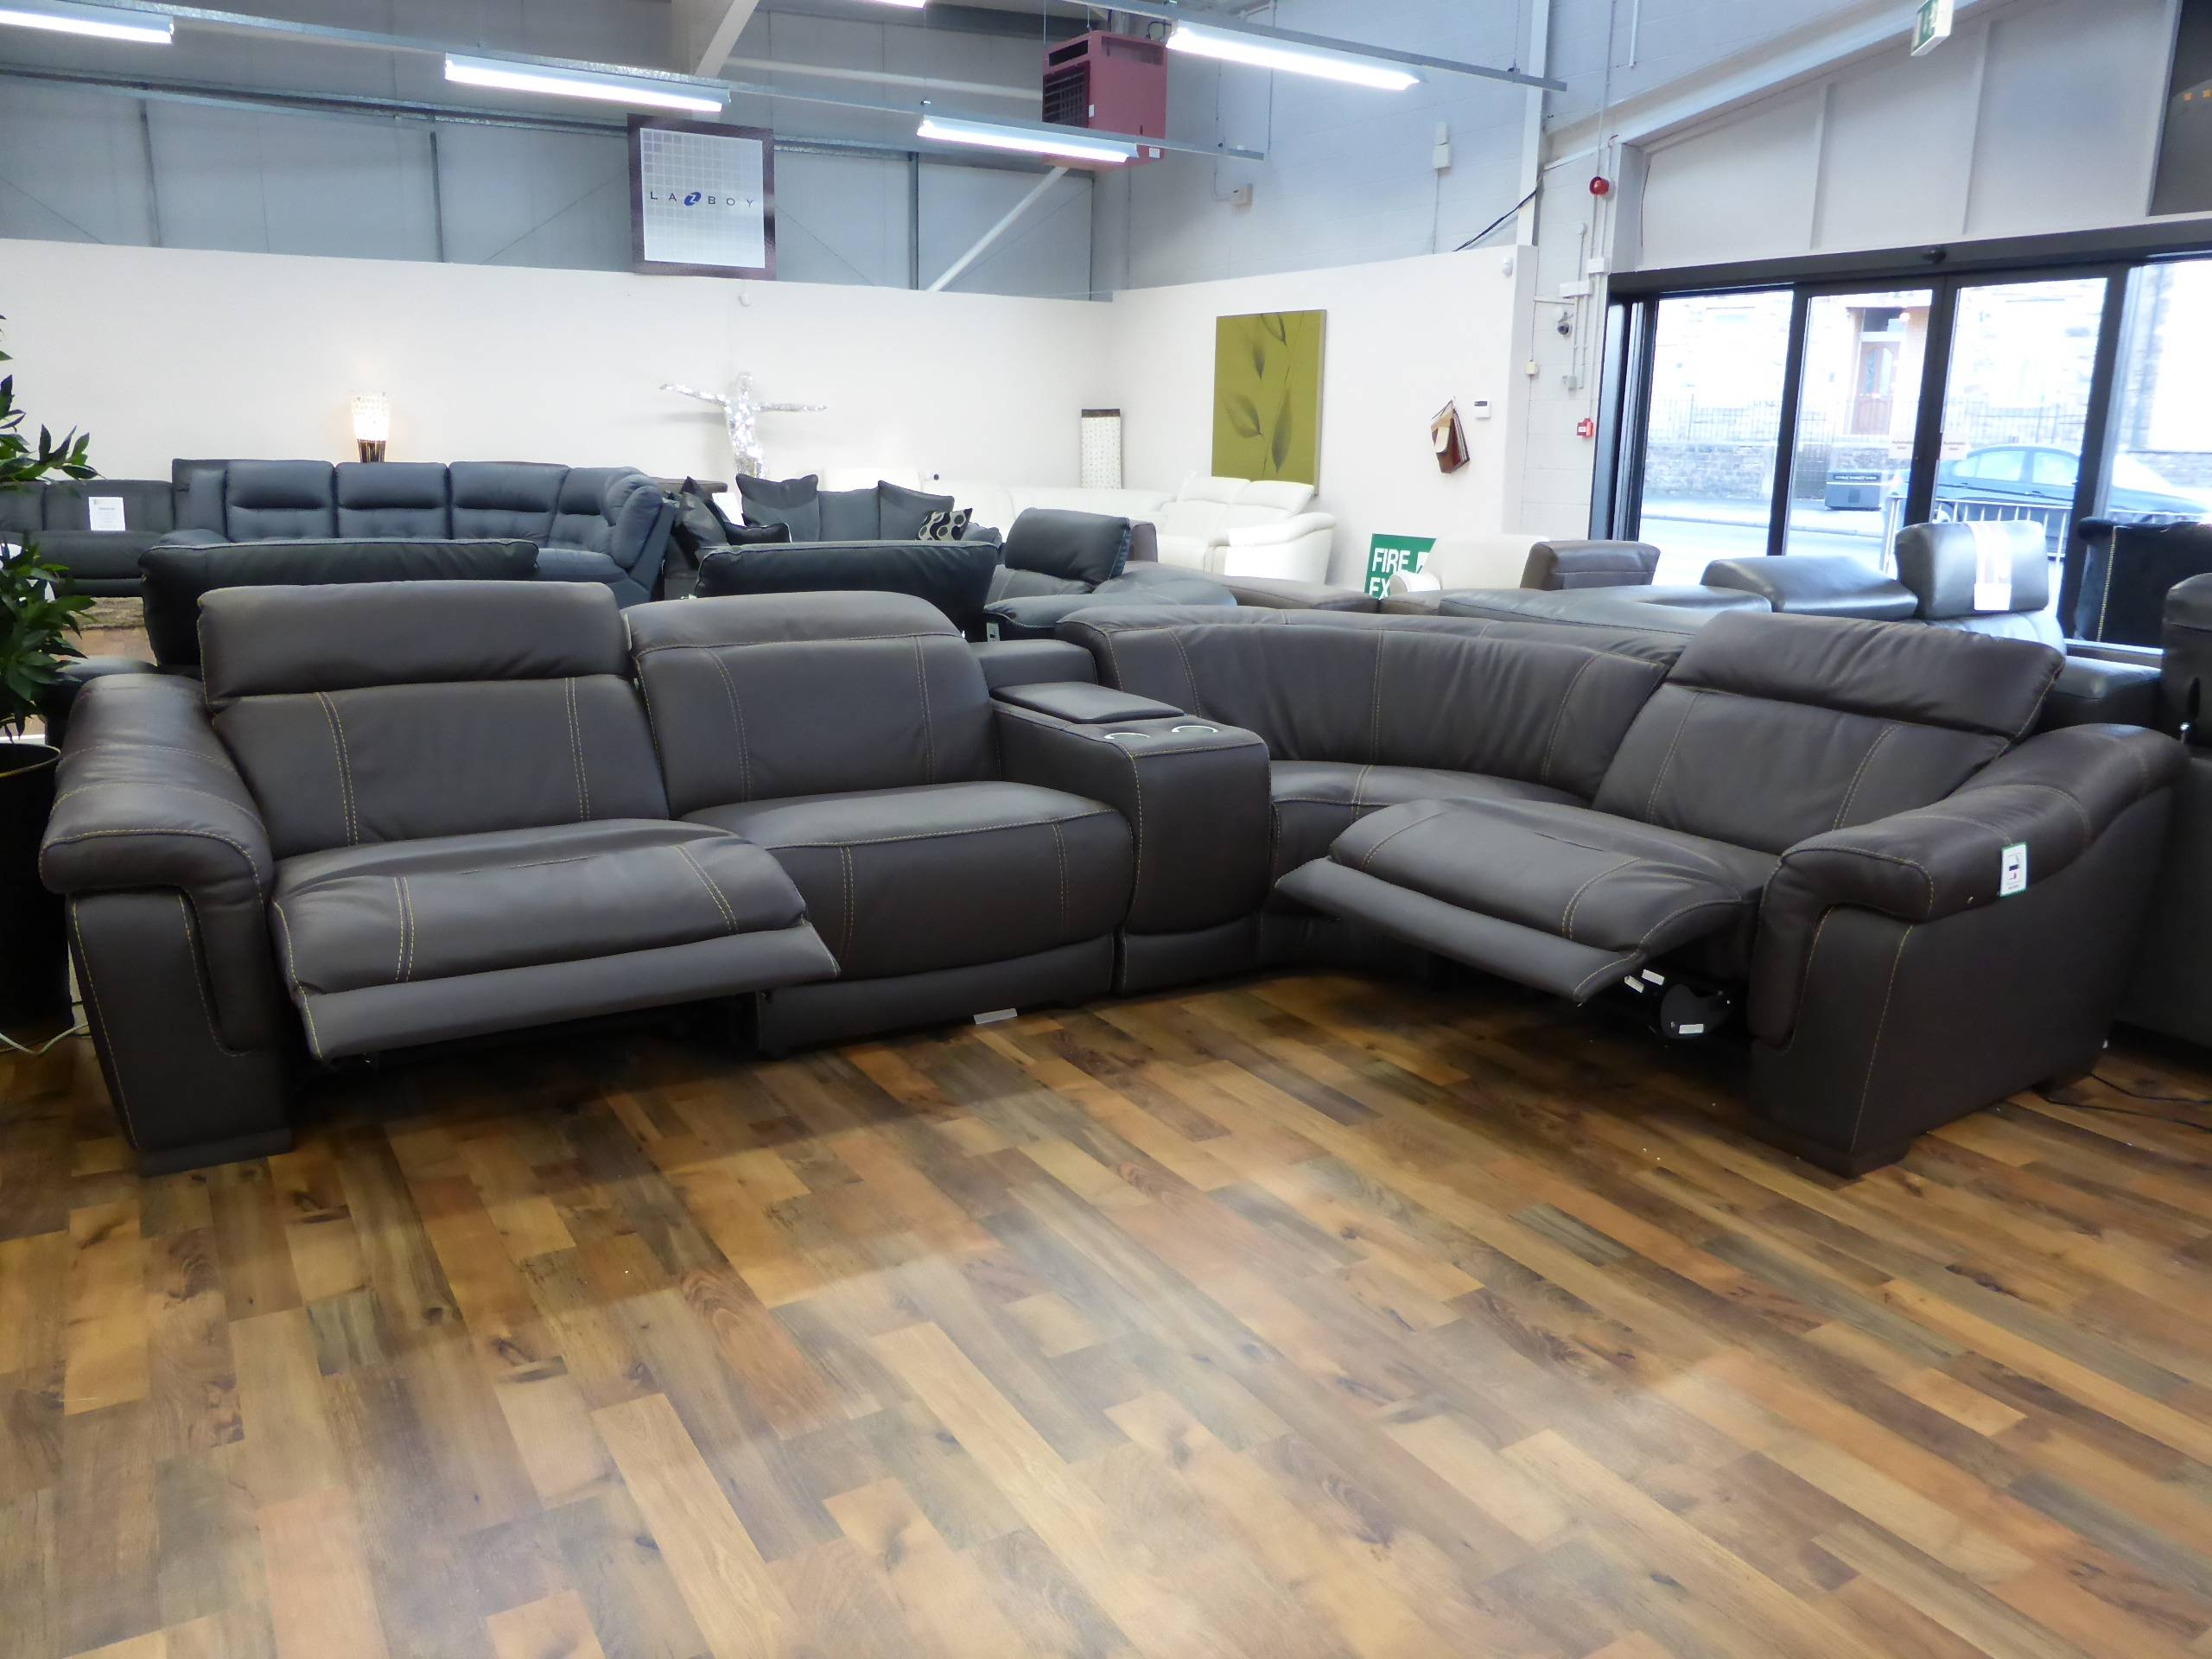 Bianco Italian Leather Electric Reclining Modular Corner Sofa In with regard to Italian Recliner Sofas (Image 5 of 15)